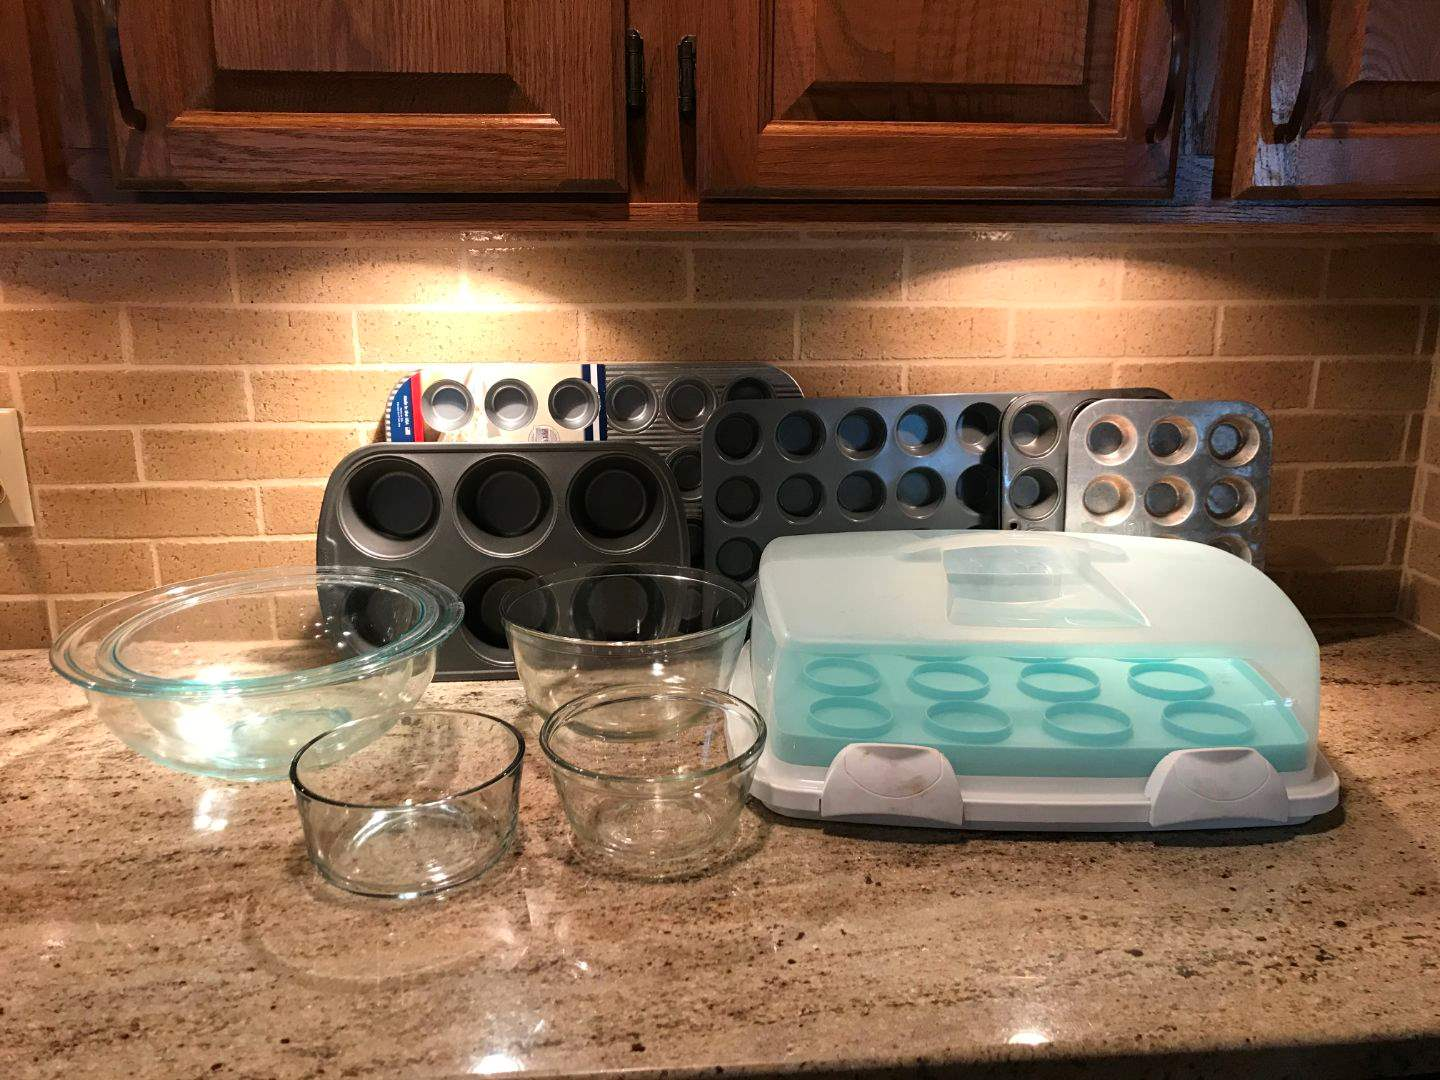 Lot # 52 - Pyrex Mixing Bowls of Various Sizes, 2 Anchor Hocking Bowls, Mini Muffin Tins & Muffin Carrying Case (main image)